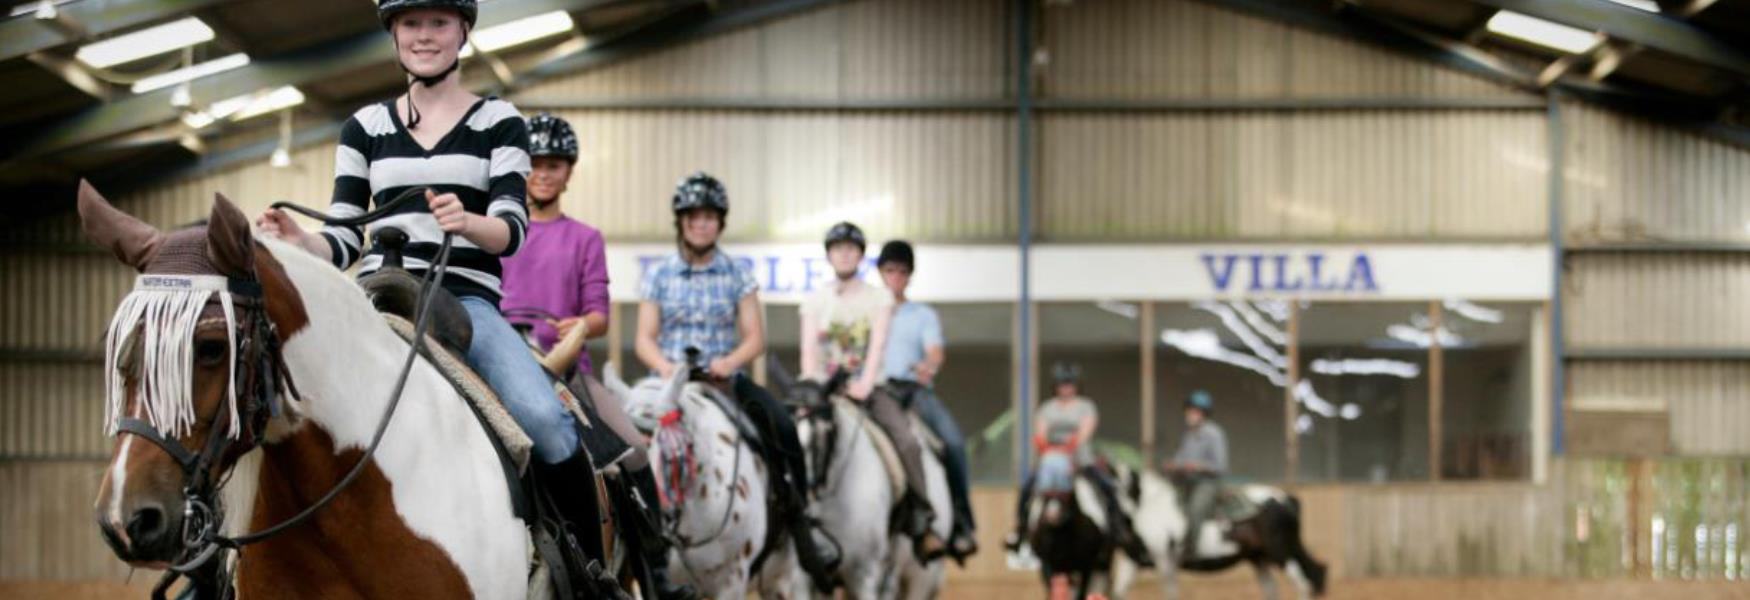 group horse riding inside at Burley Villa School of Riding in the New Forest